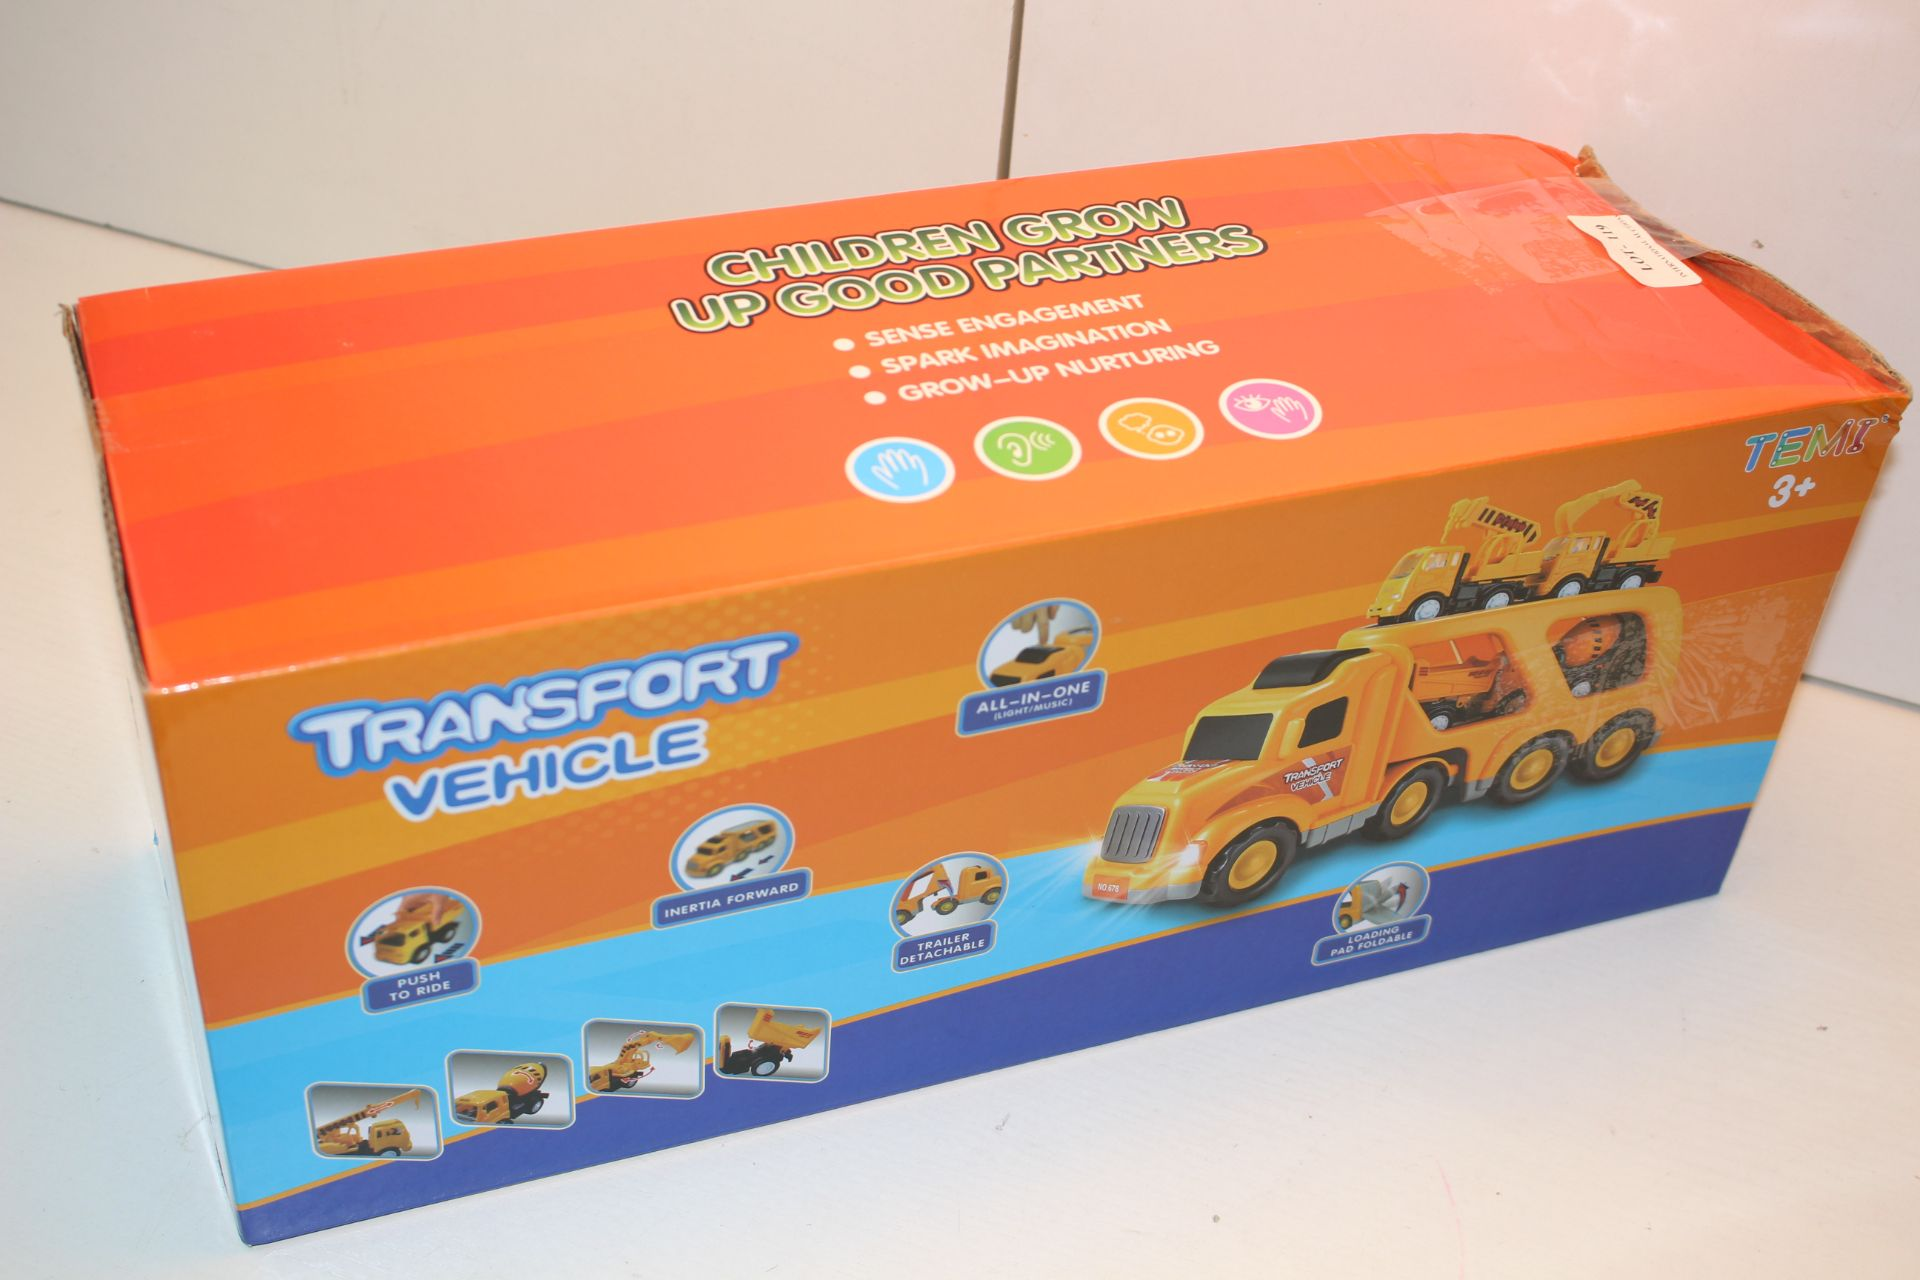 BOXED TRANSPORT VEHICLE - CHILDREN GROW UP GOOD PARTNERSCondition ReportAppraisal Available on